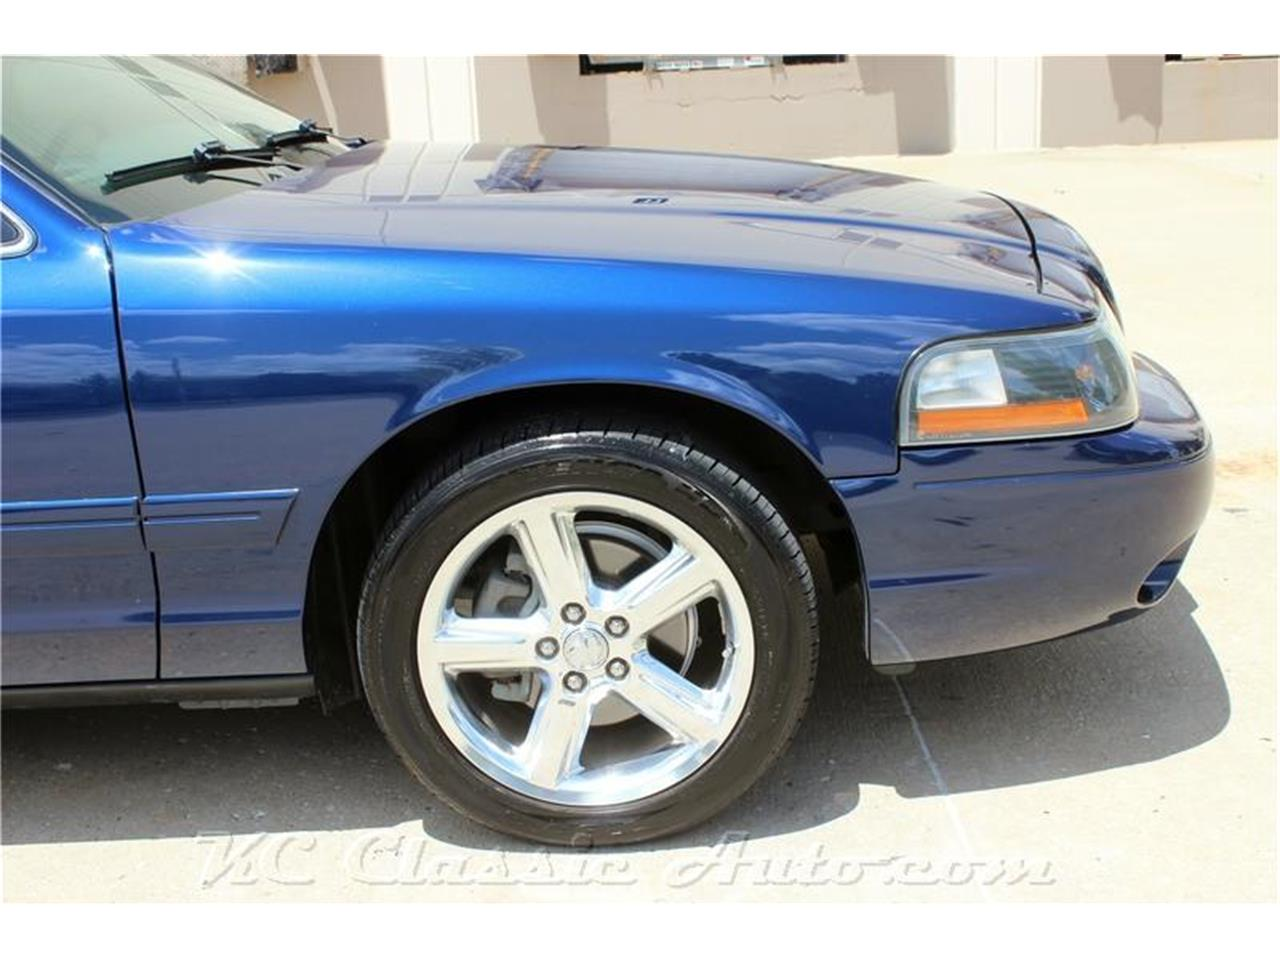 2003 Mercury Marauder for sale in Lenexa, KS – photo 37